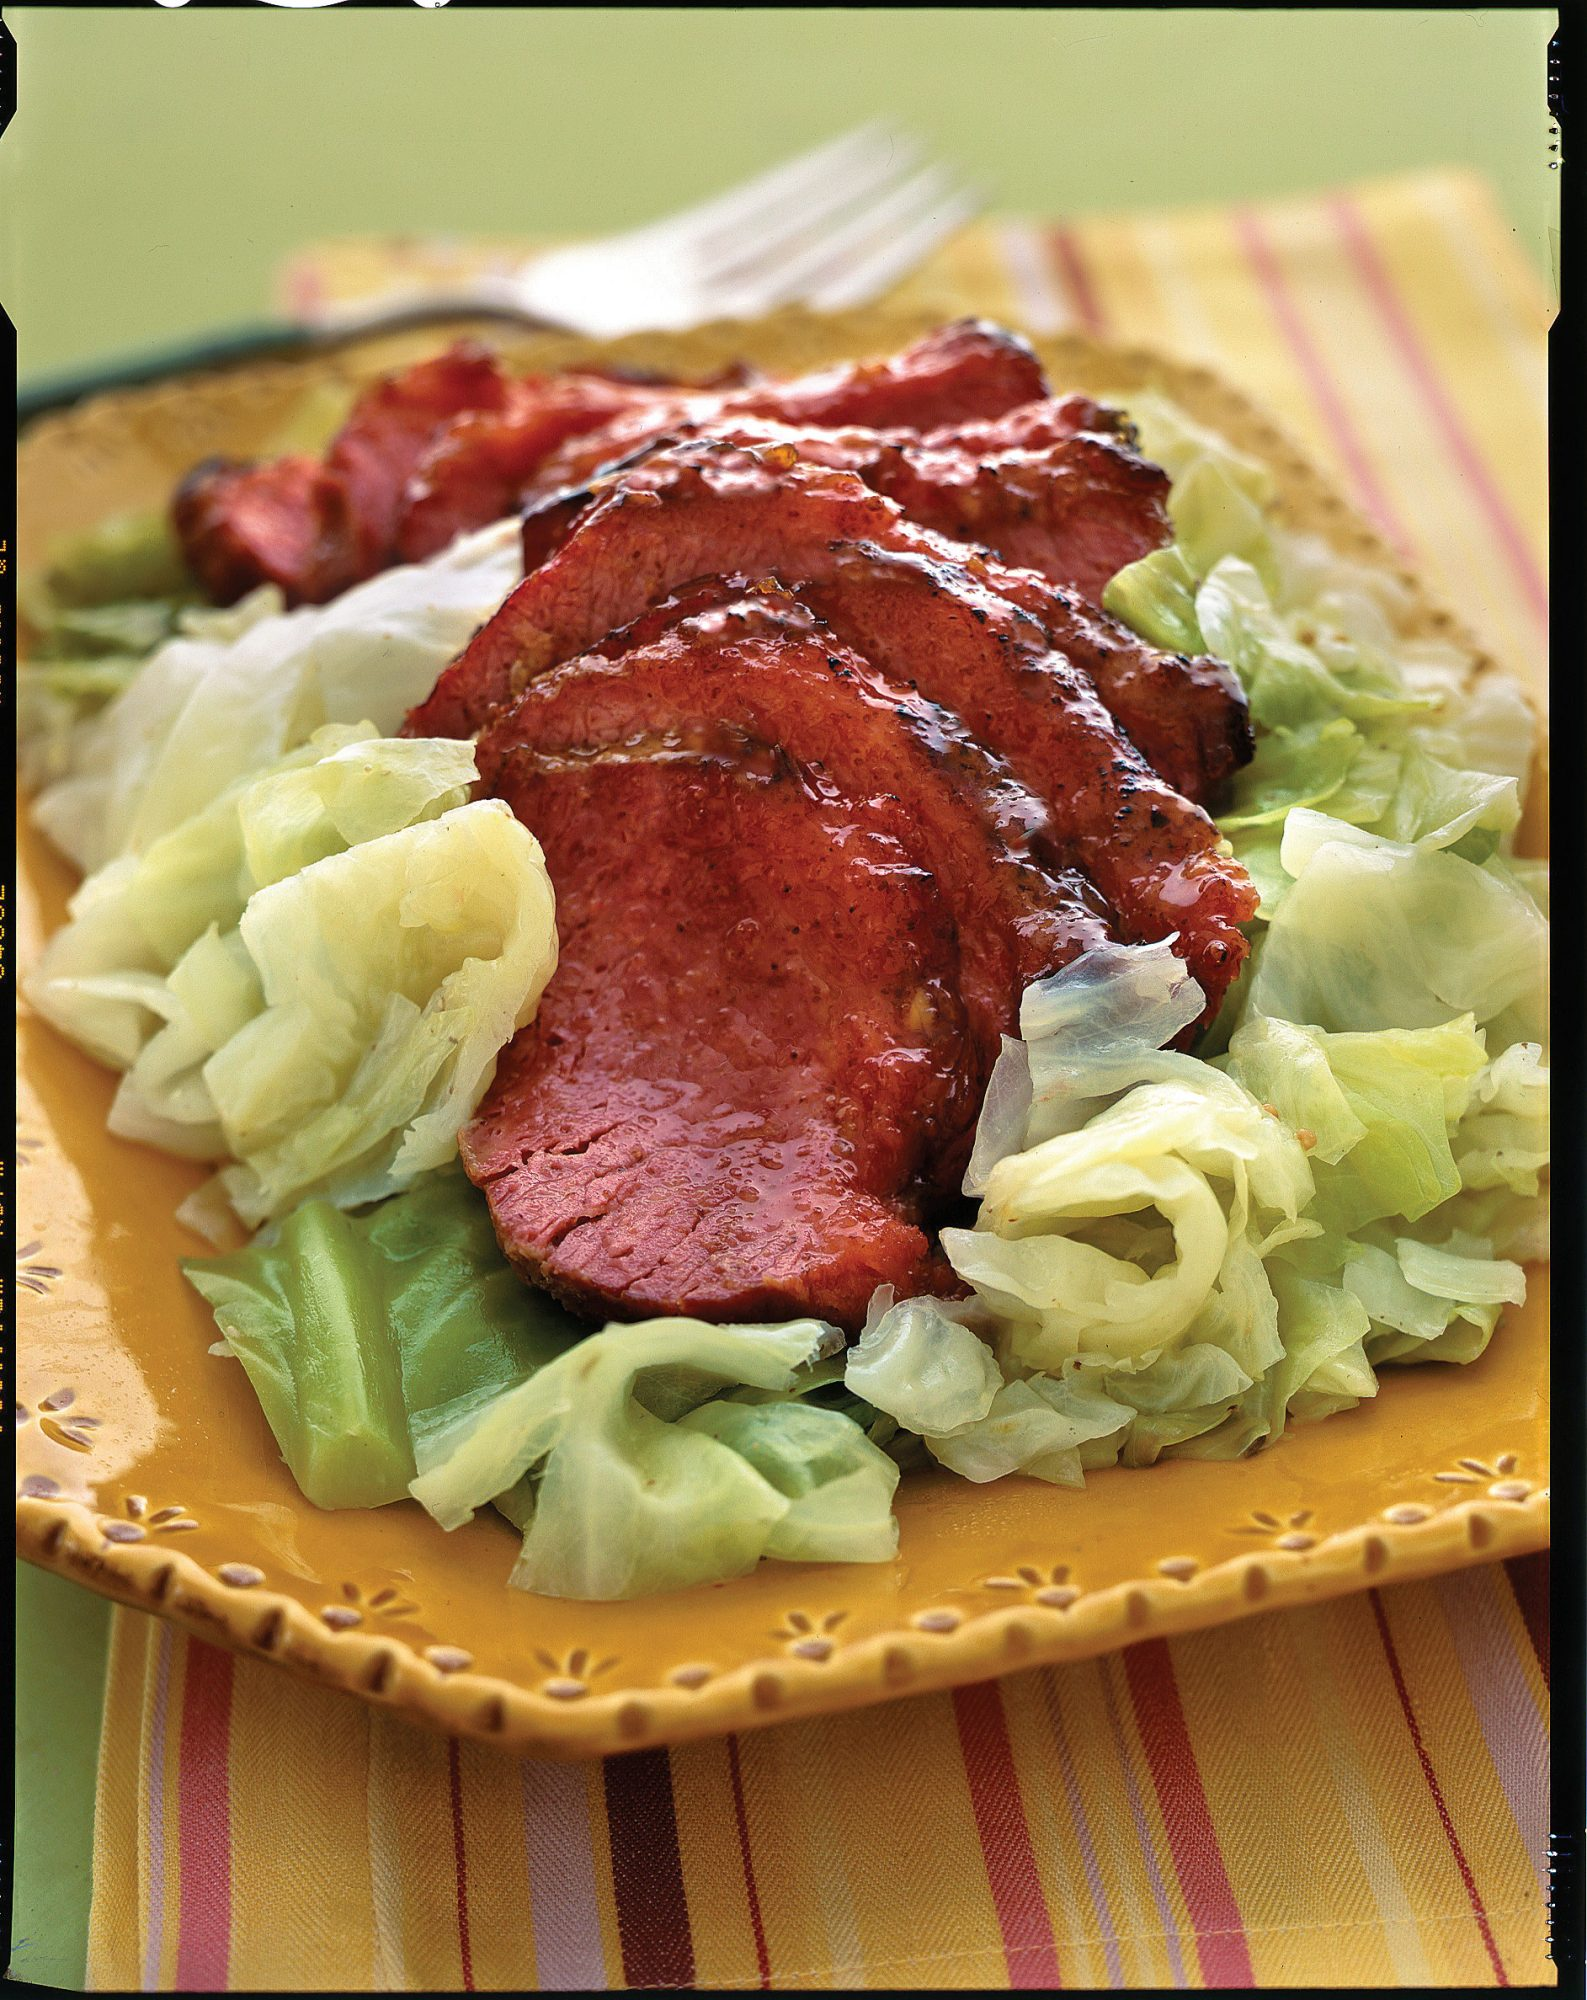 St. Patrick's Day Recipes: Corned Beef With Marmalade-Mustard Glaze